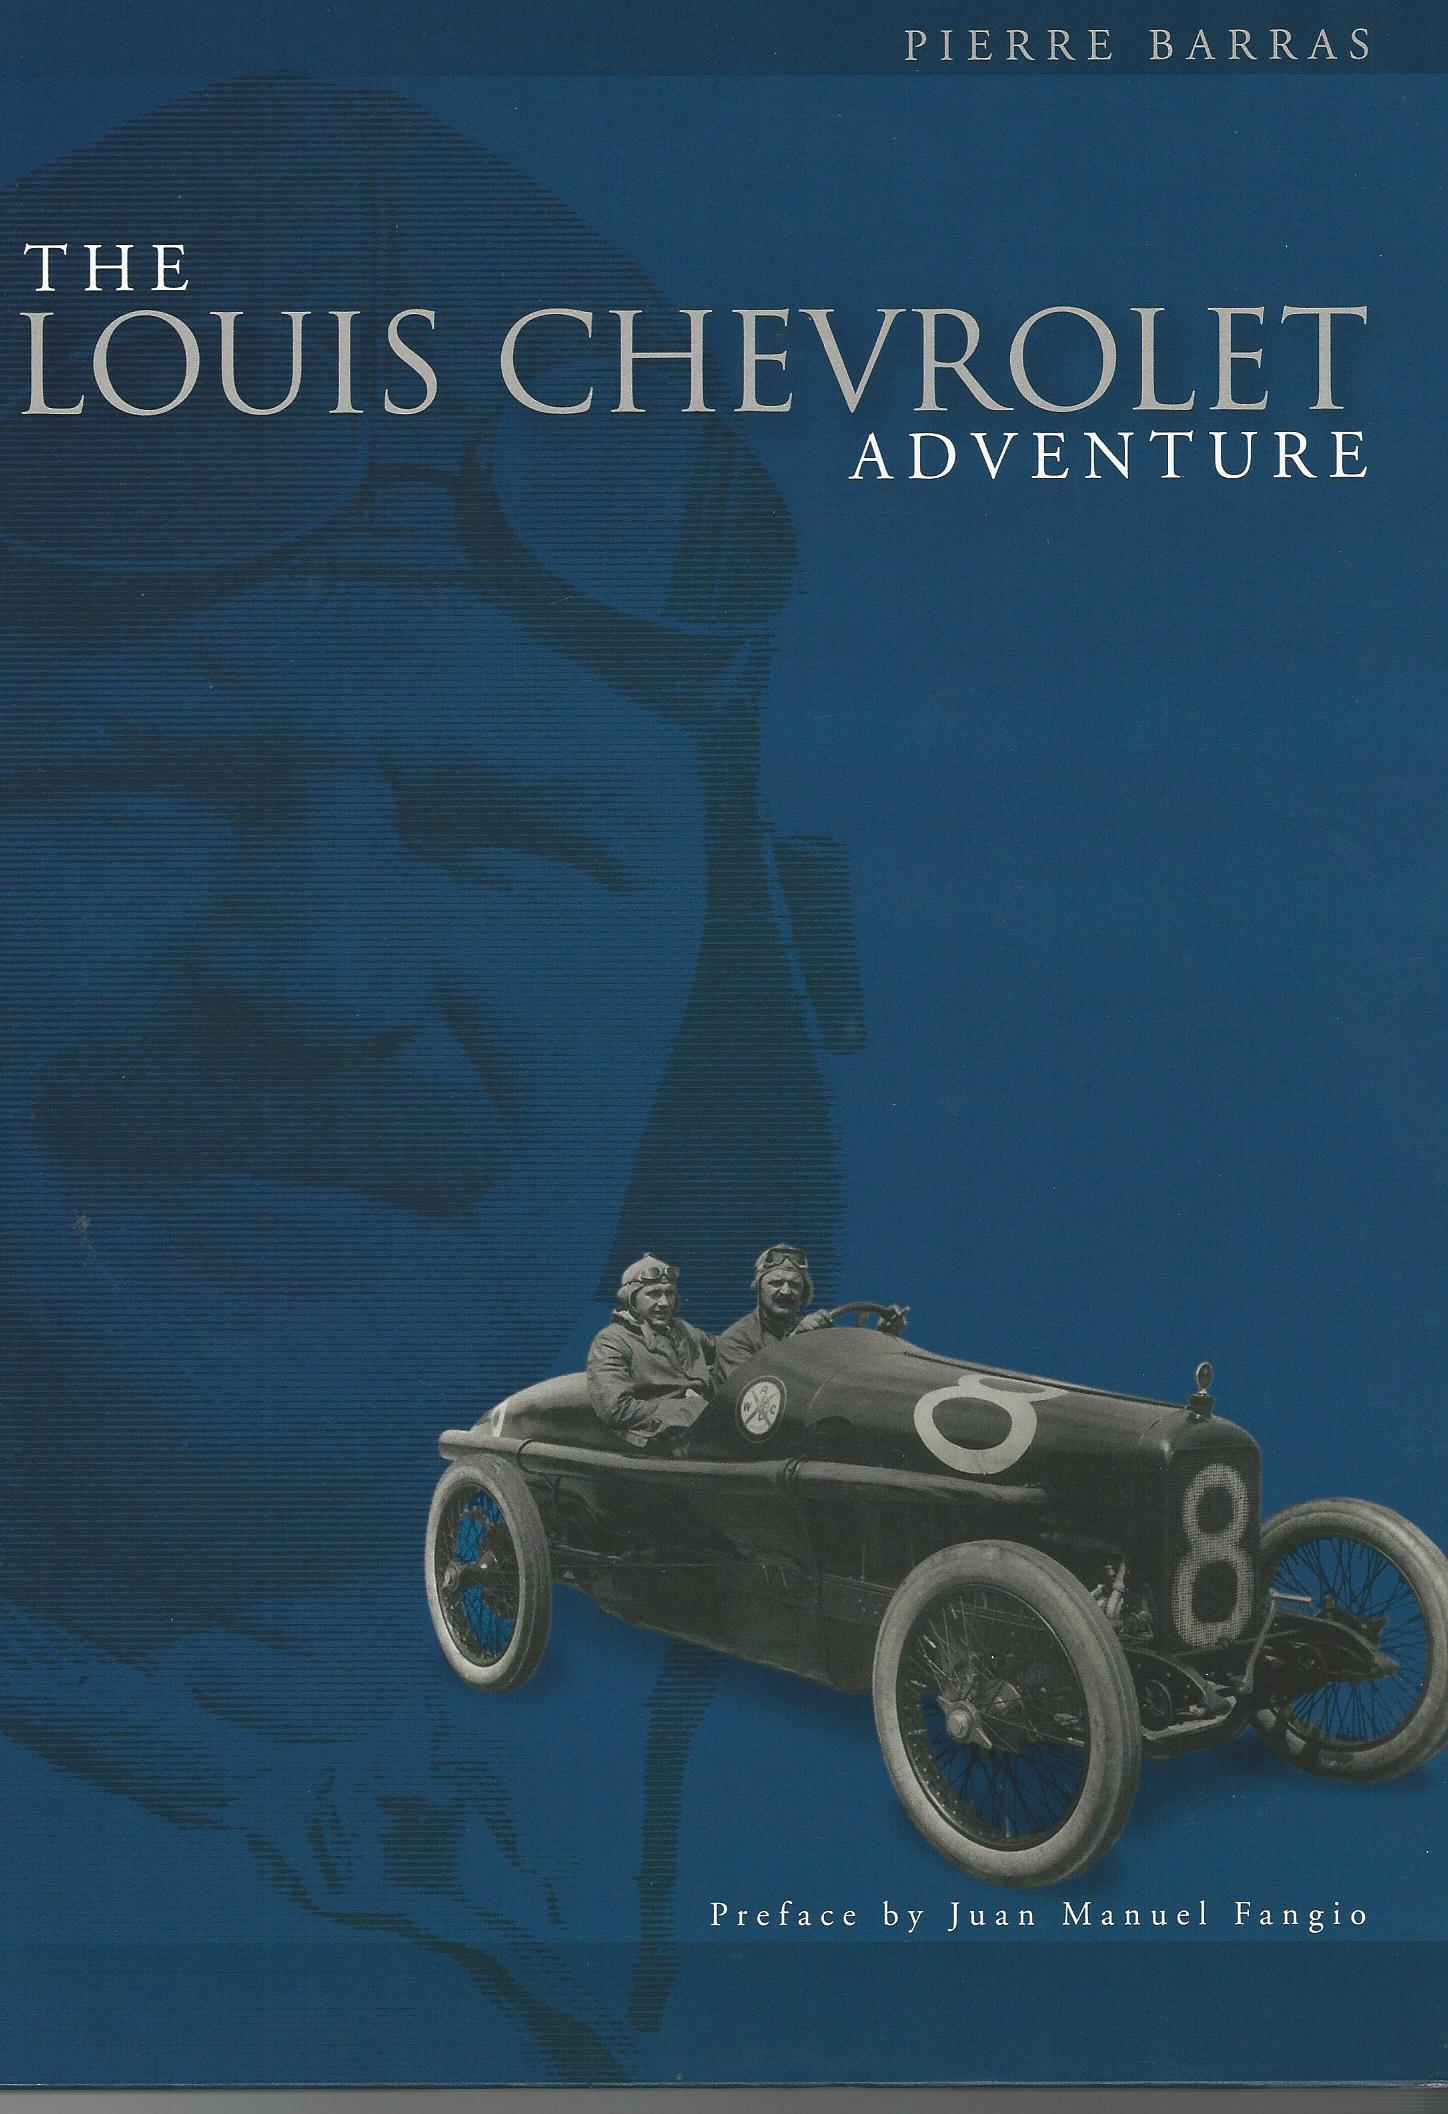 Image for The Louis Chevrolet Adventure.